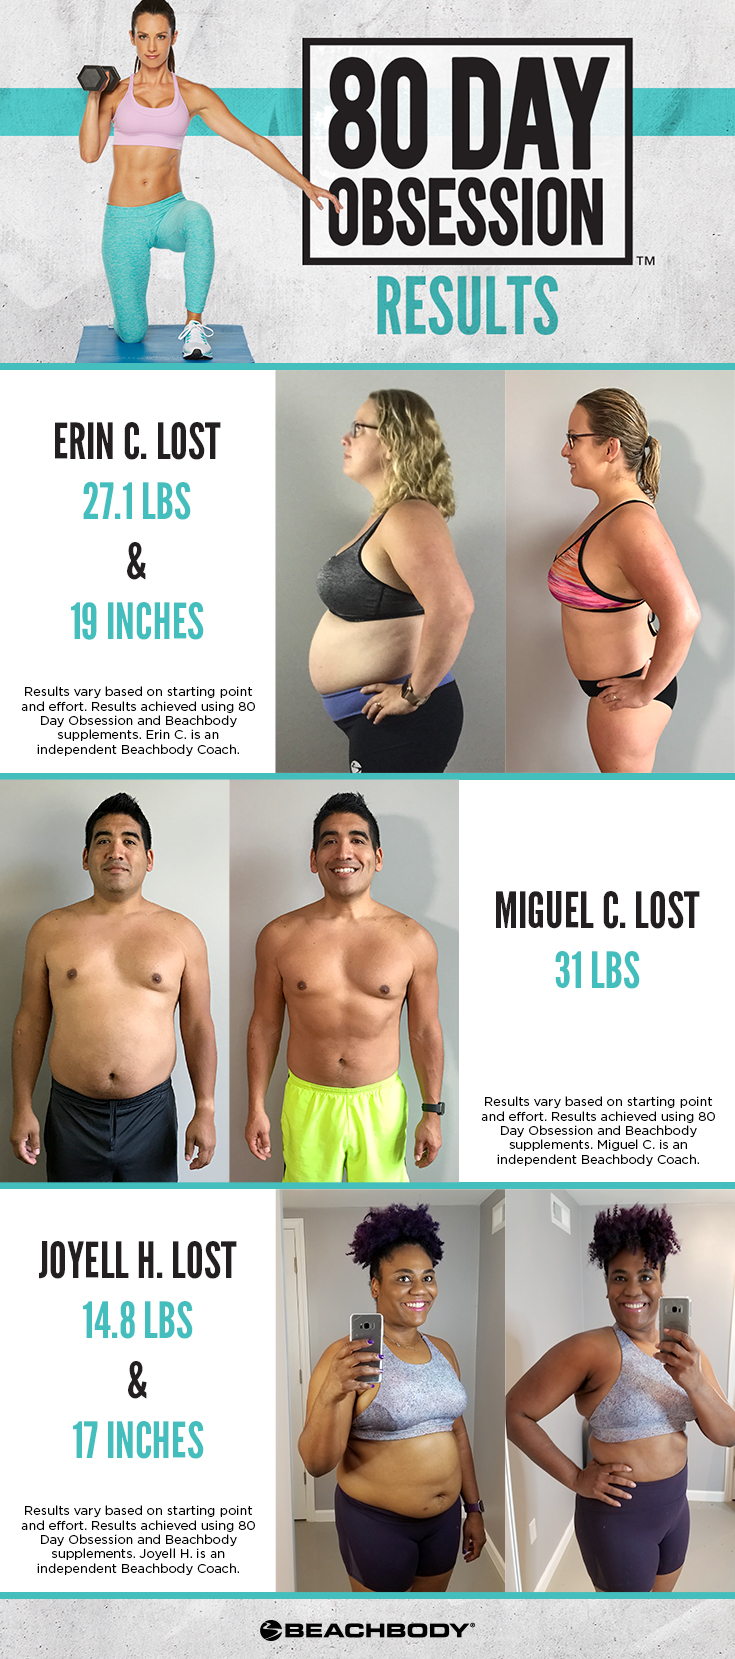 80 Day Obsession Weight Loss Results Before and After Photos